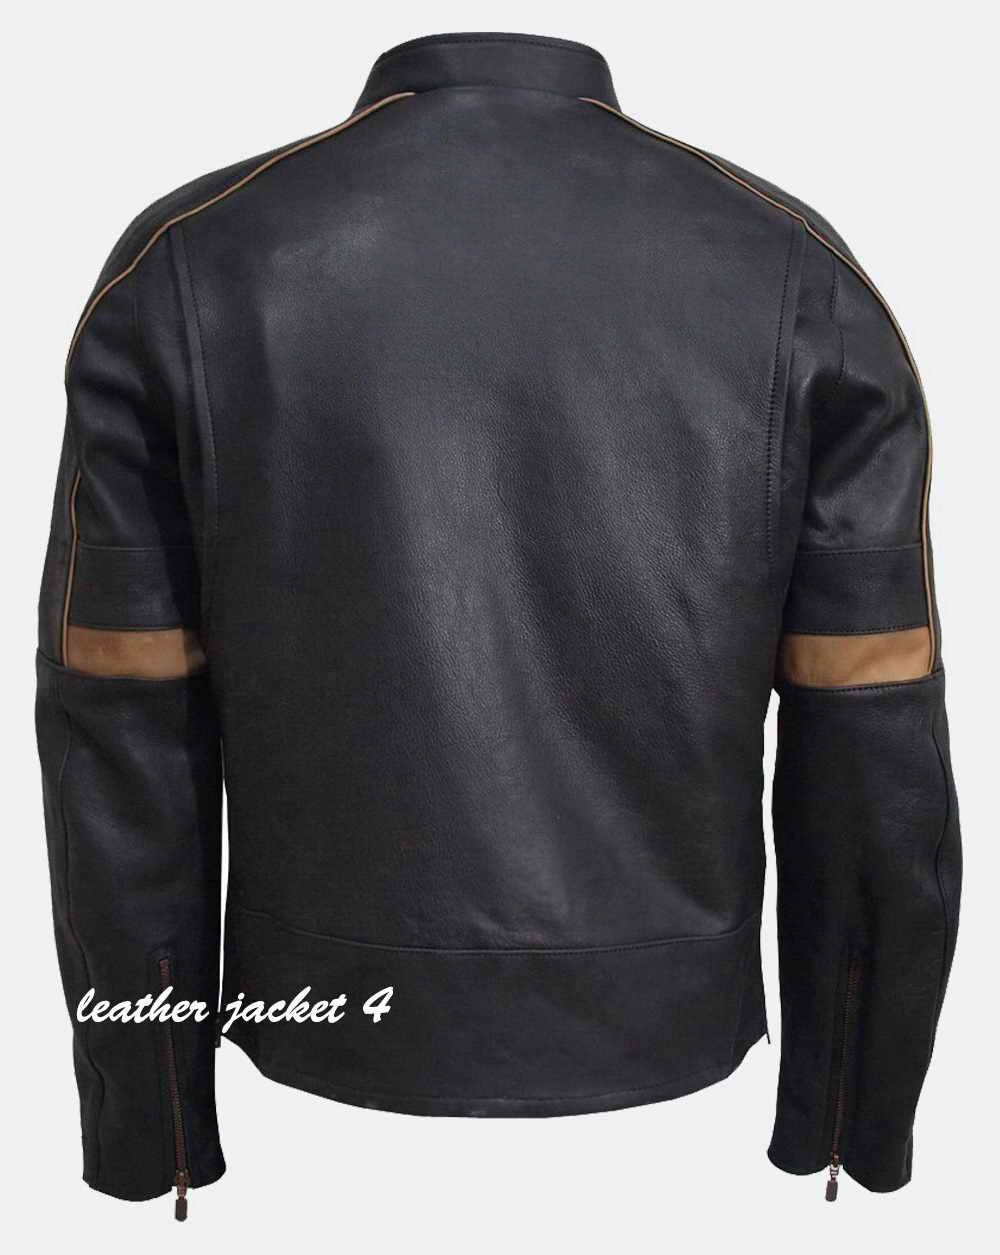 Similar Bison Belstaff Hero Leather Jacket Black